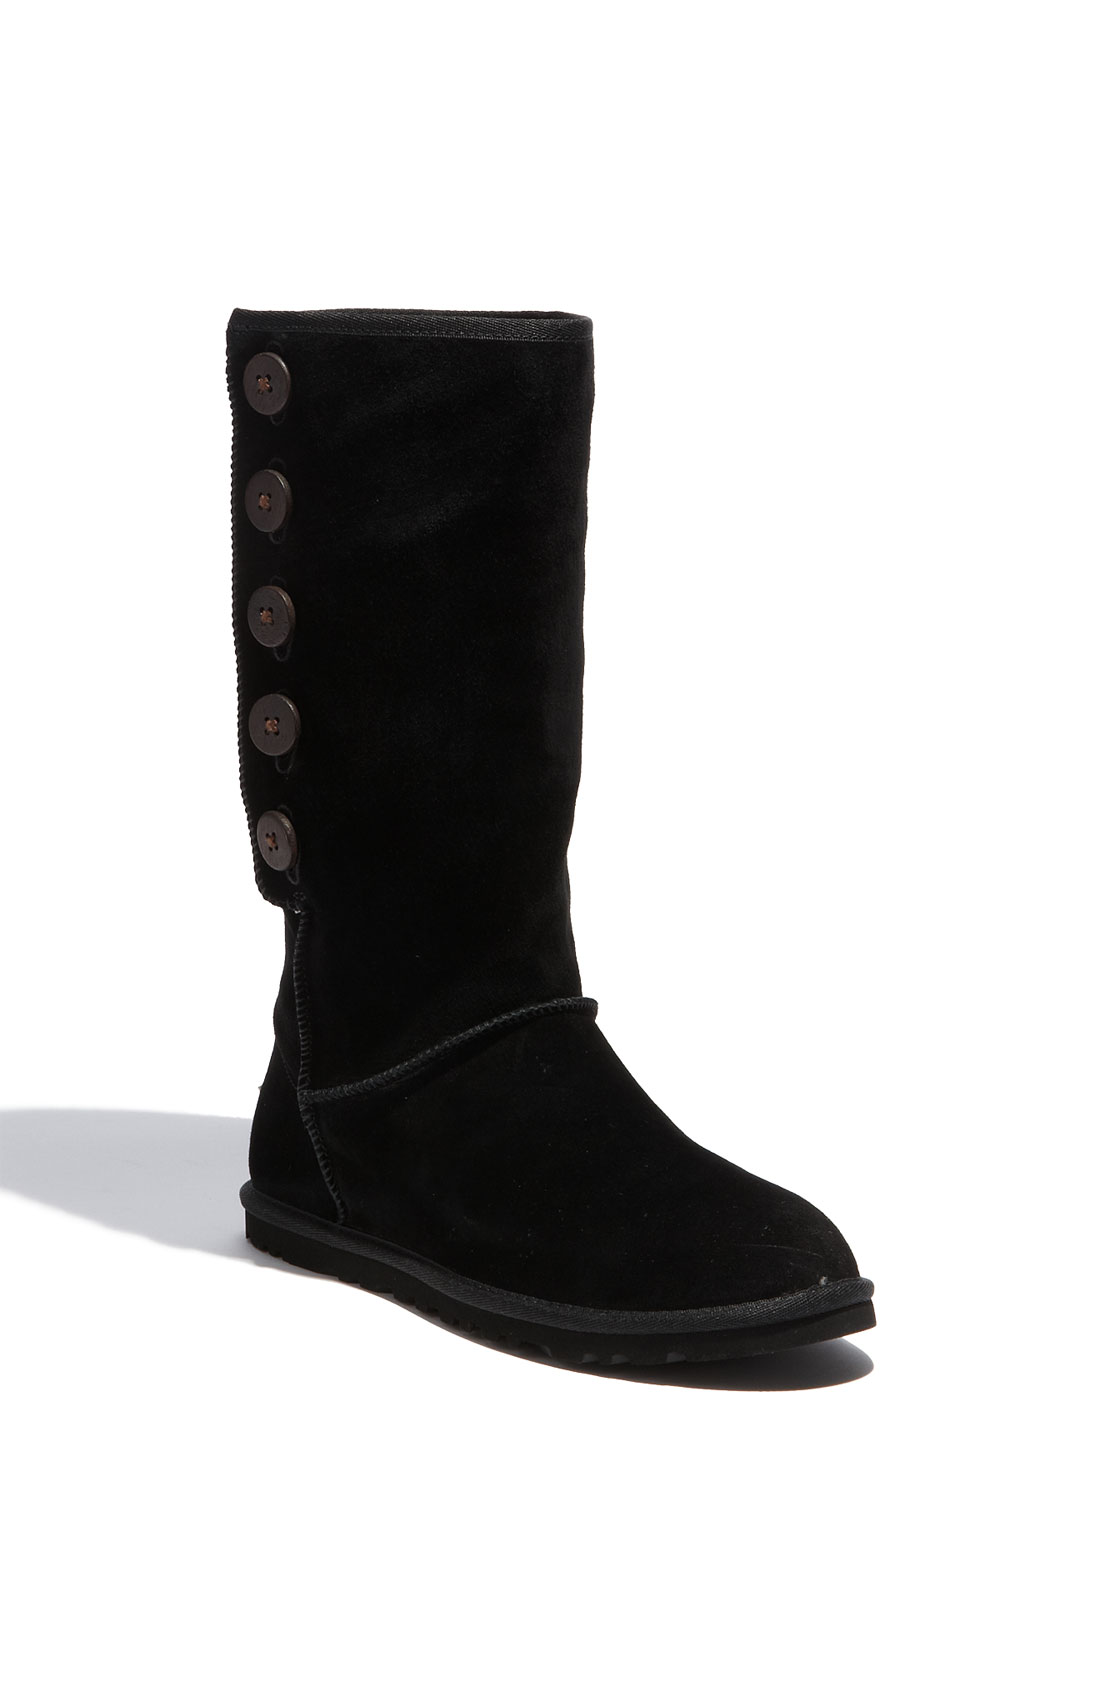 ugg lo pro suede boot in black lyst